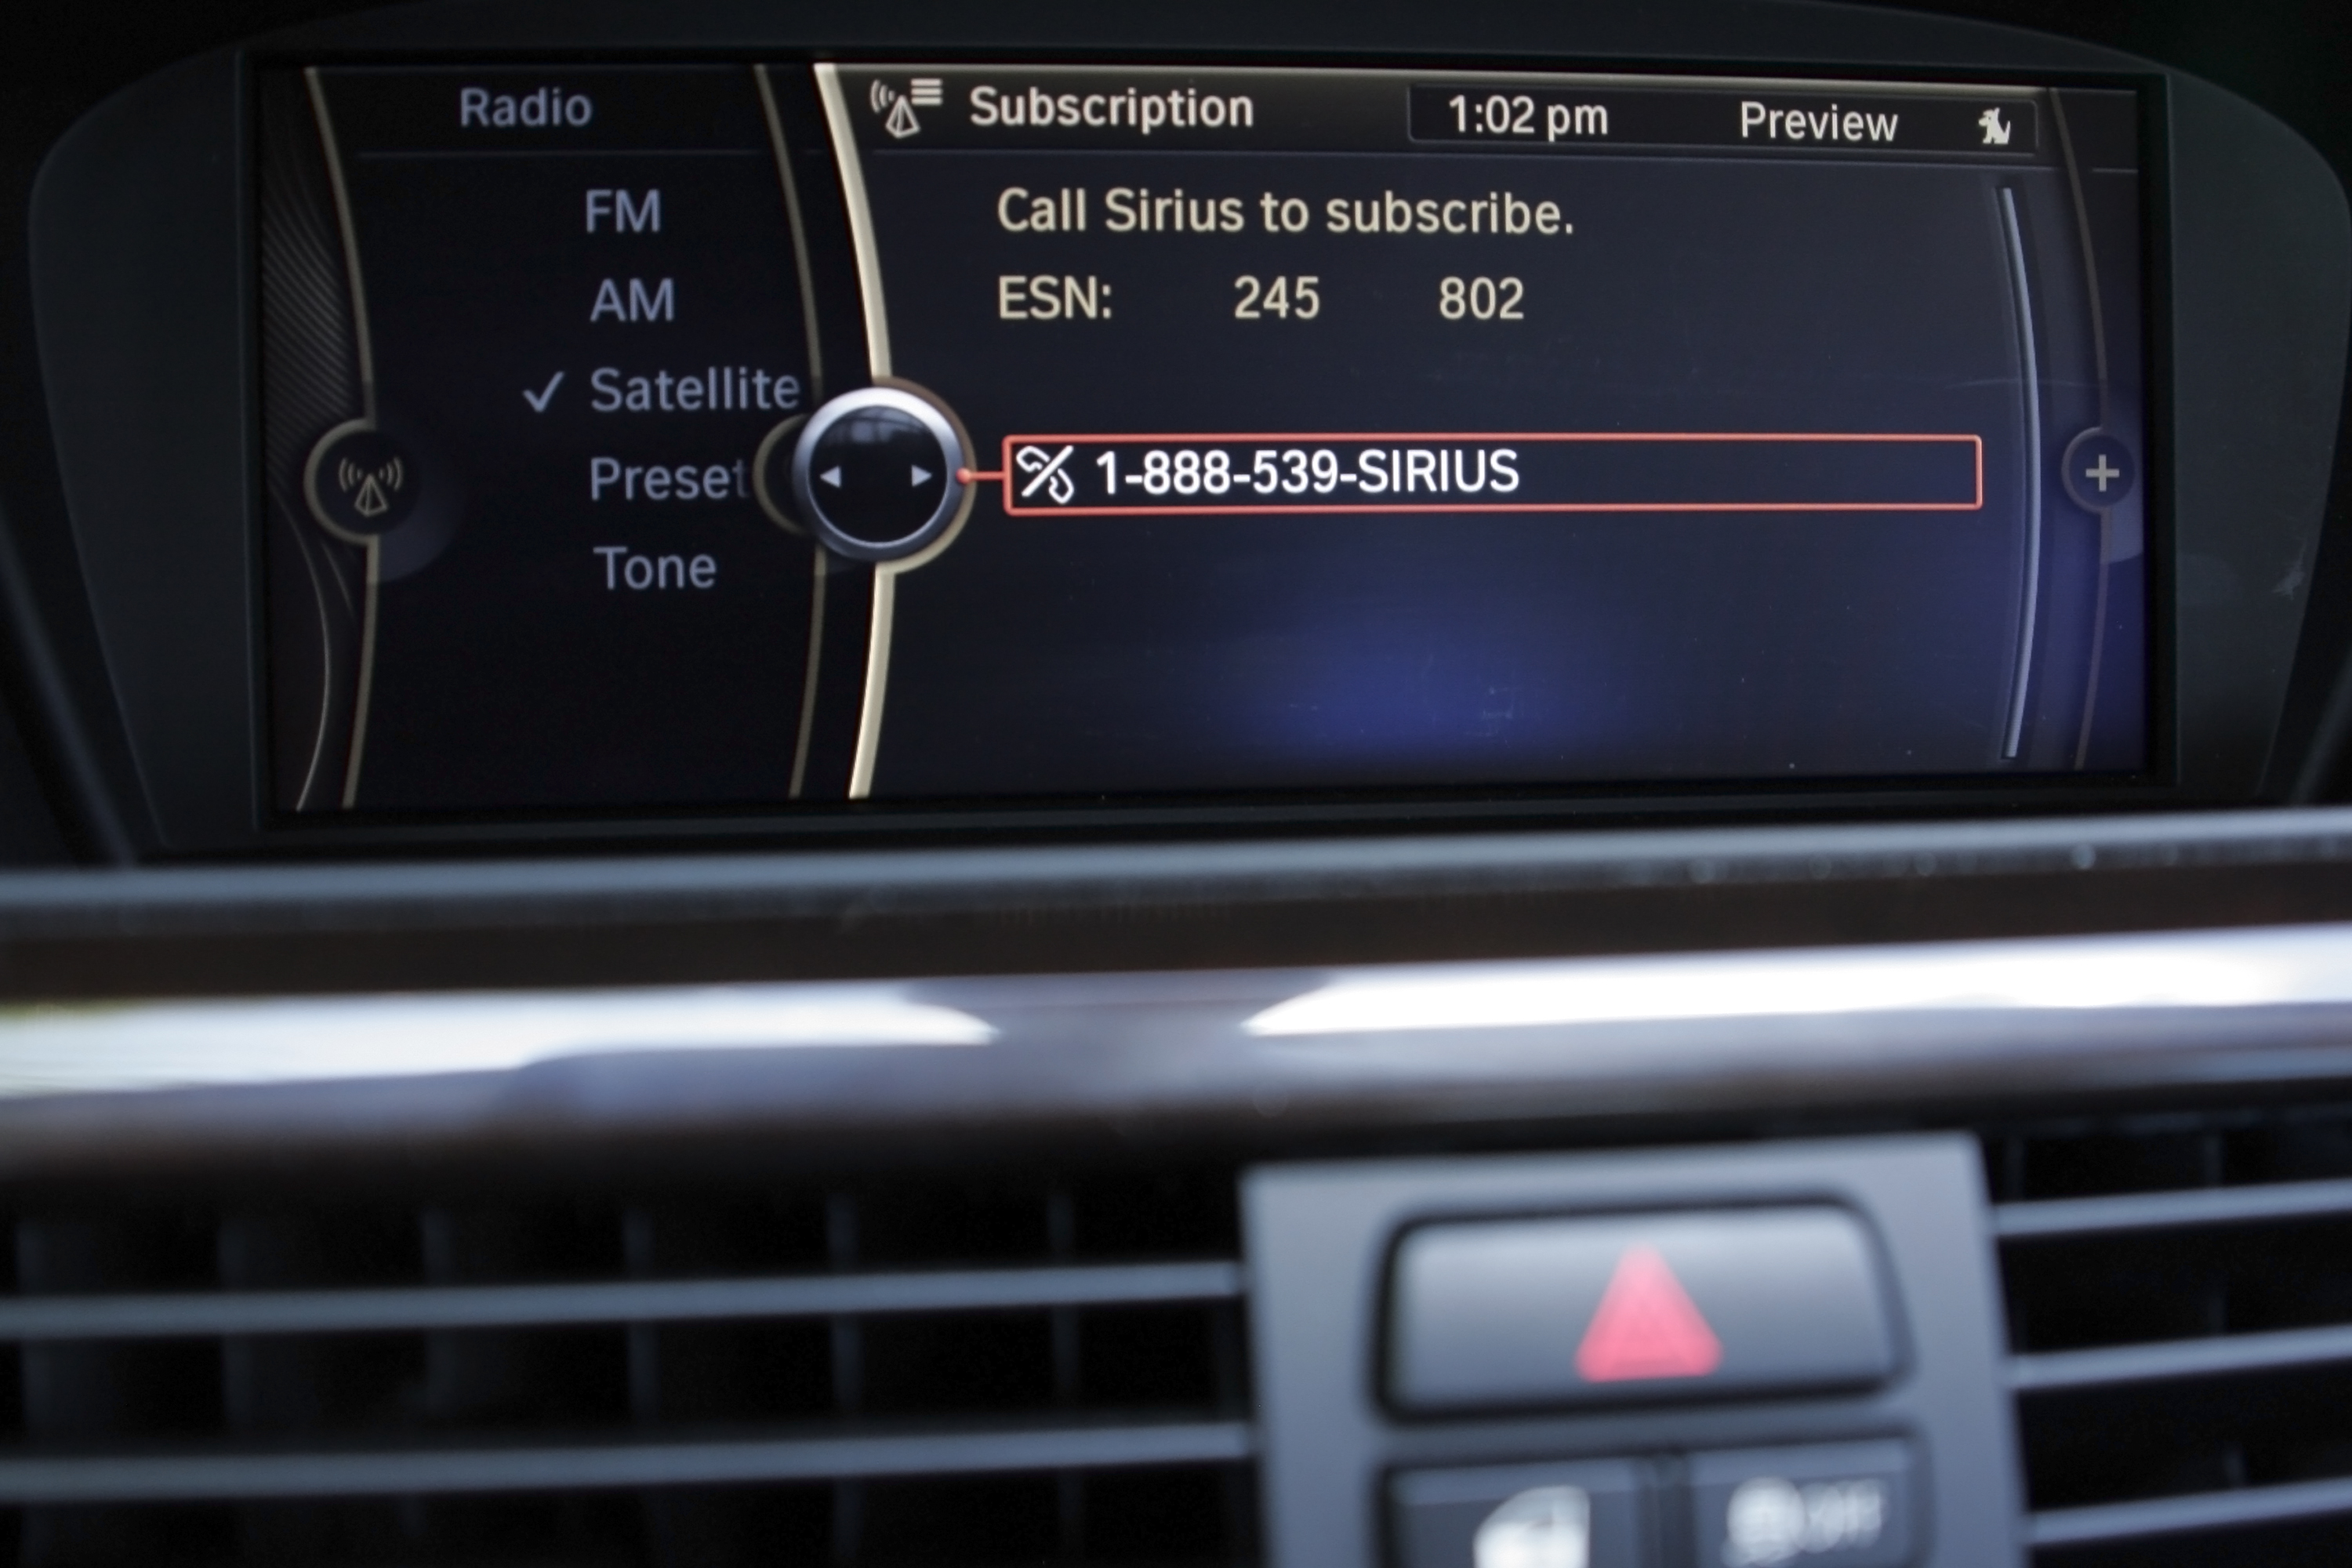 Activate satellite radio mercedes software free download for Mercedes benz radio code reset free